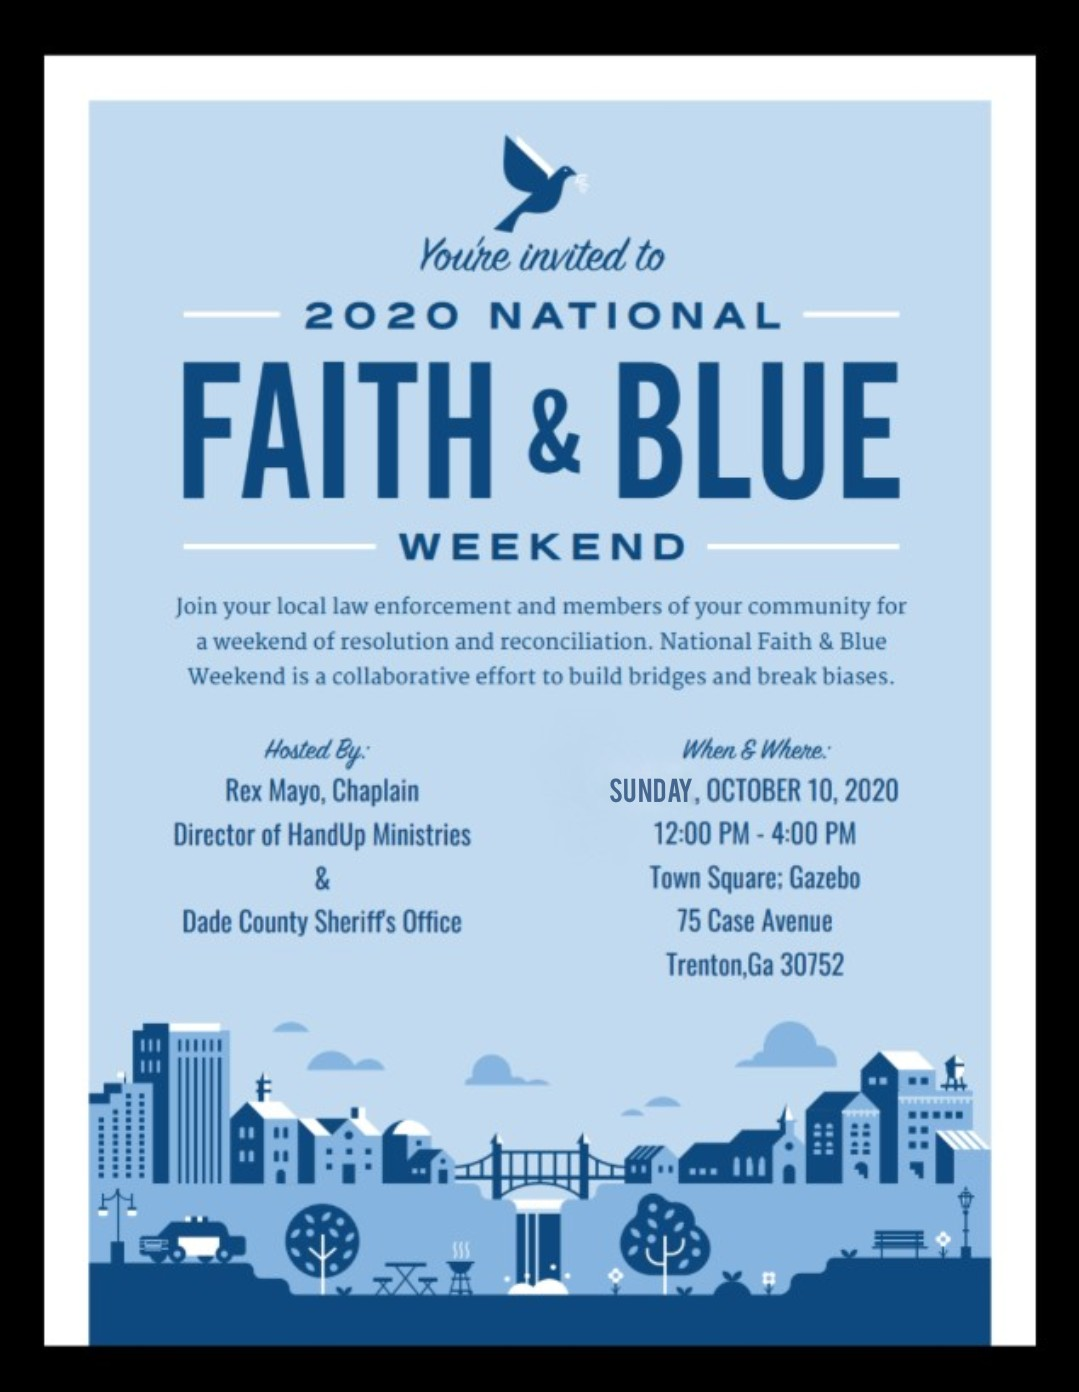 Faith & Blue Event to be Held this Weekend